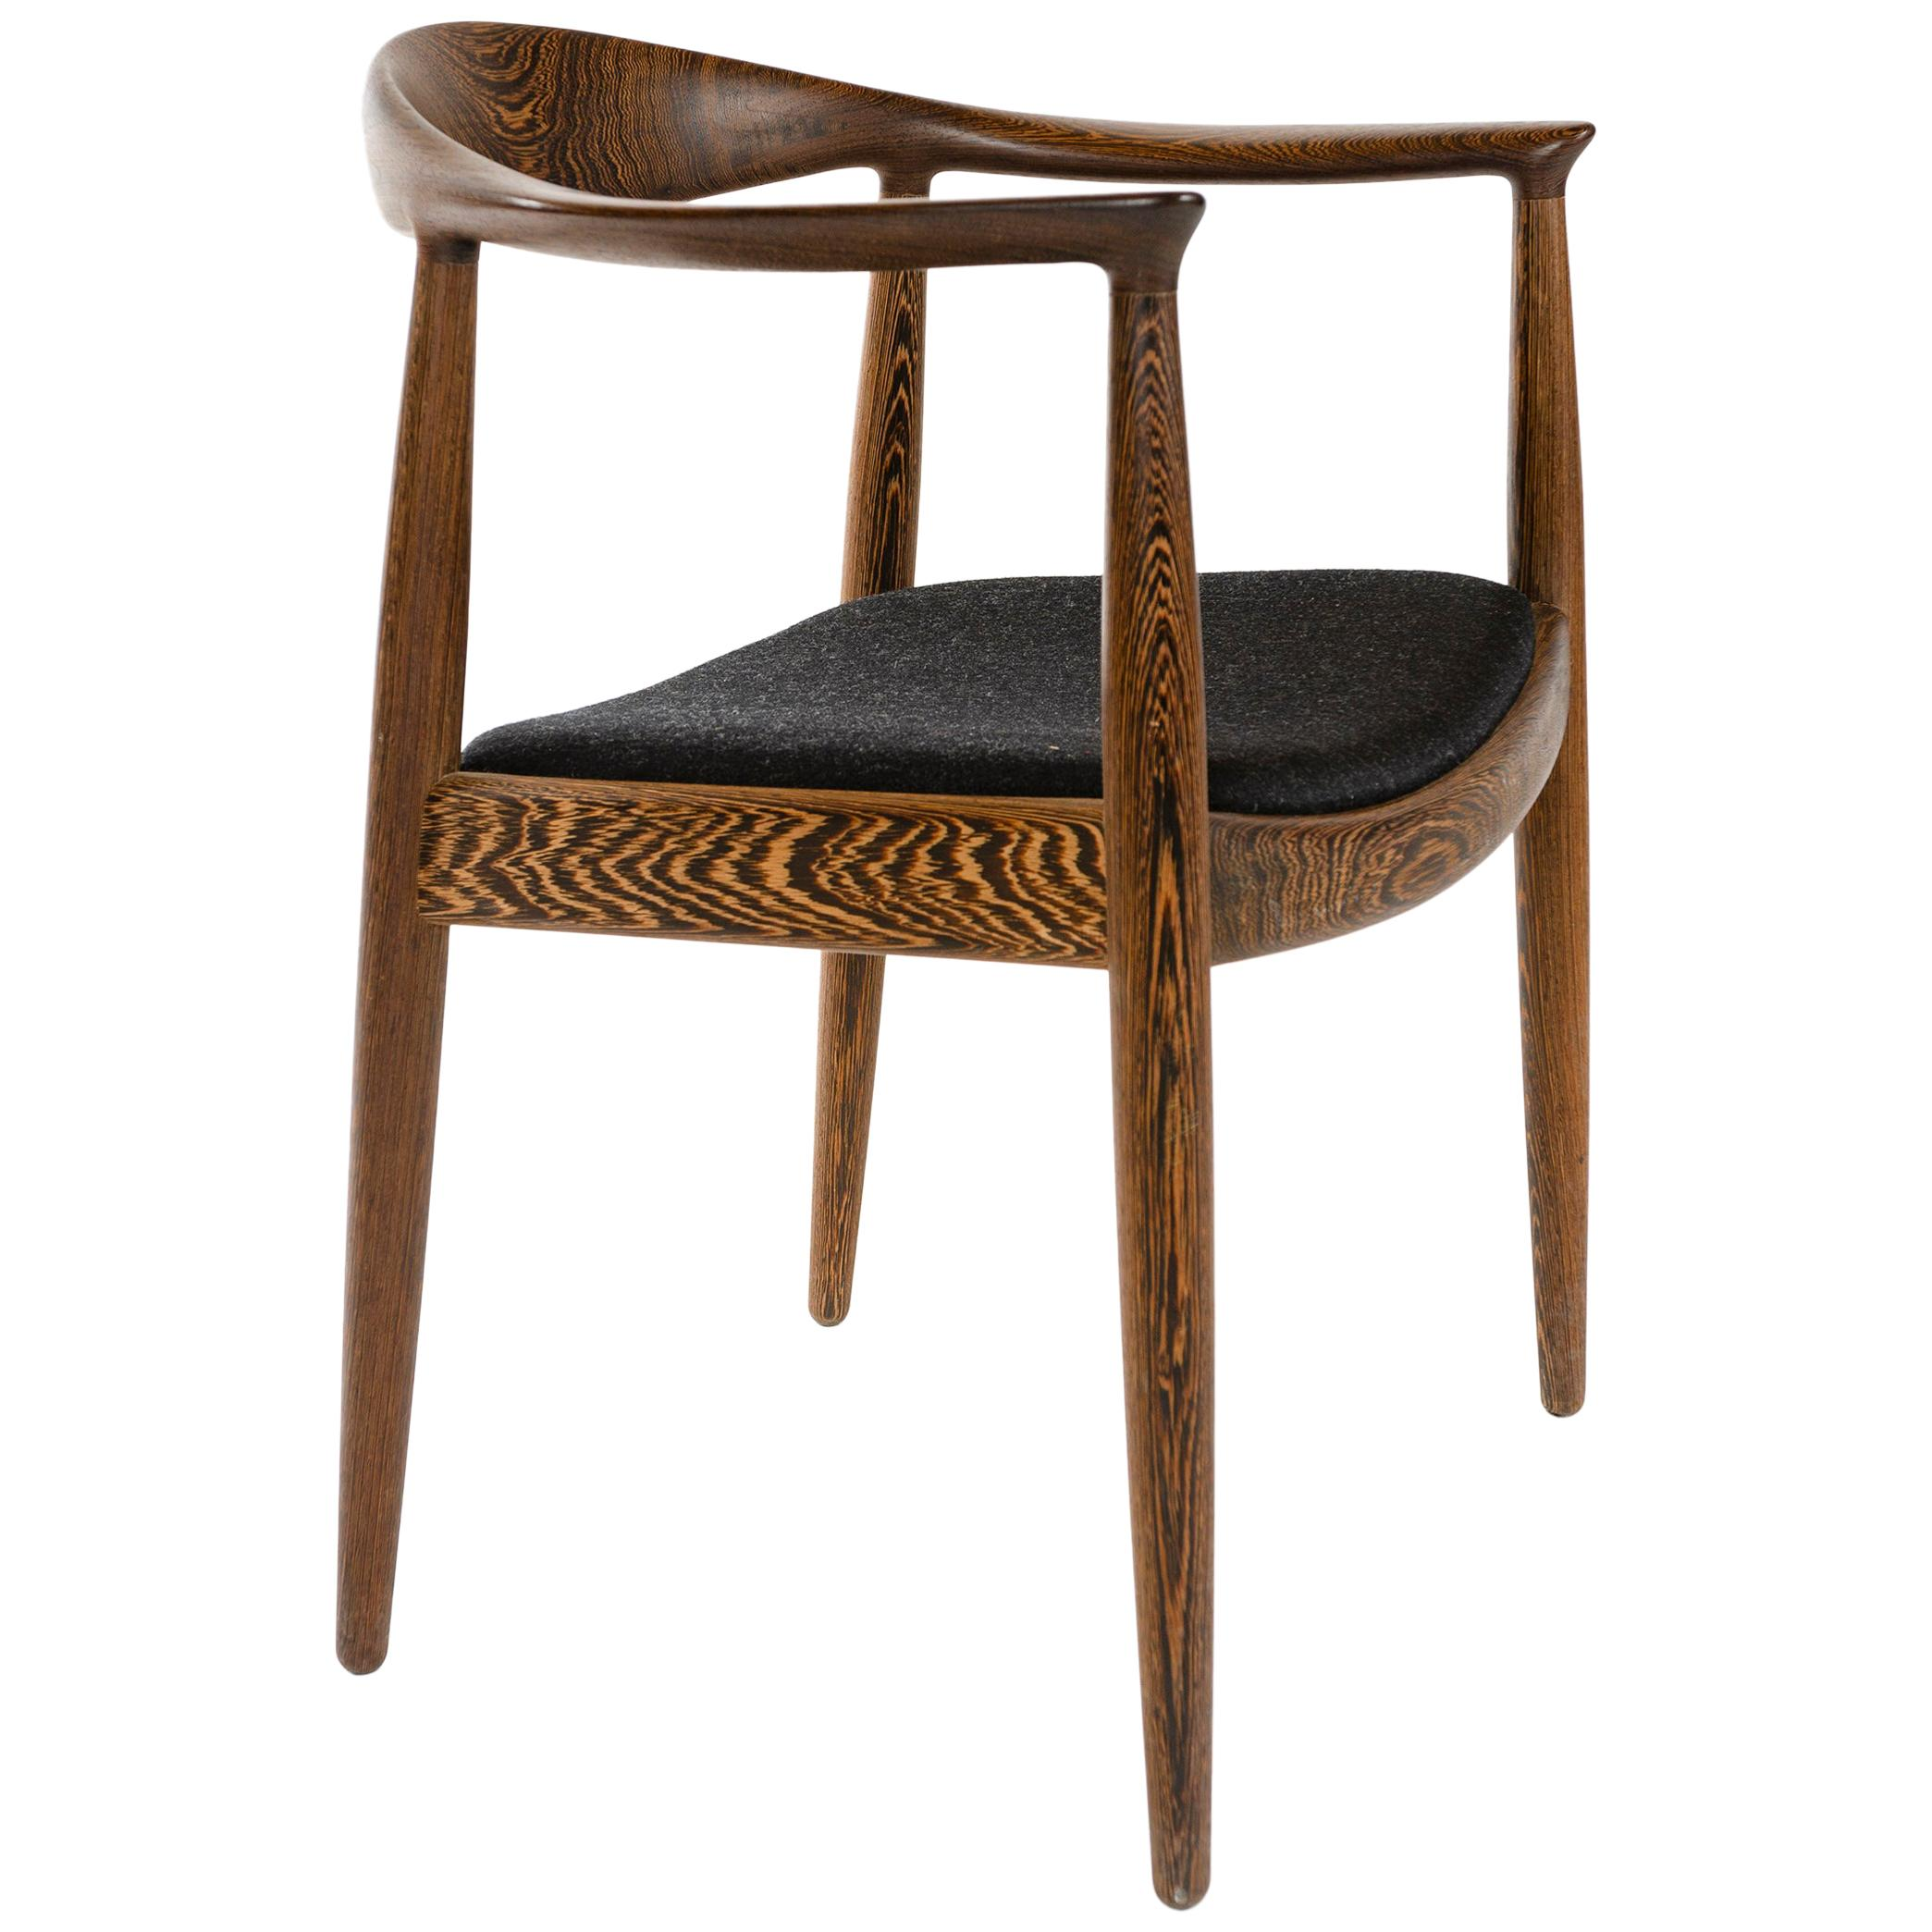 PP503 The Round Chair in Wengé by Hans J. Wegner for PP Møbler